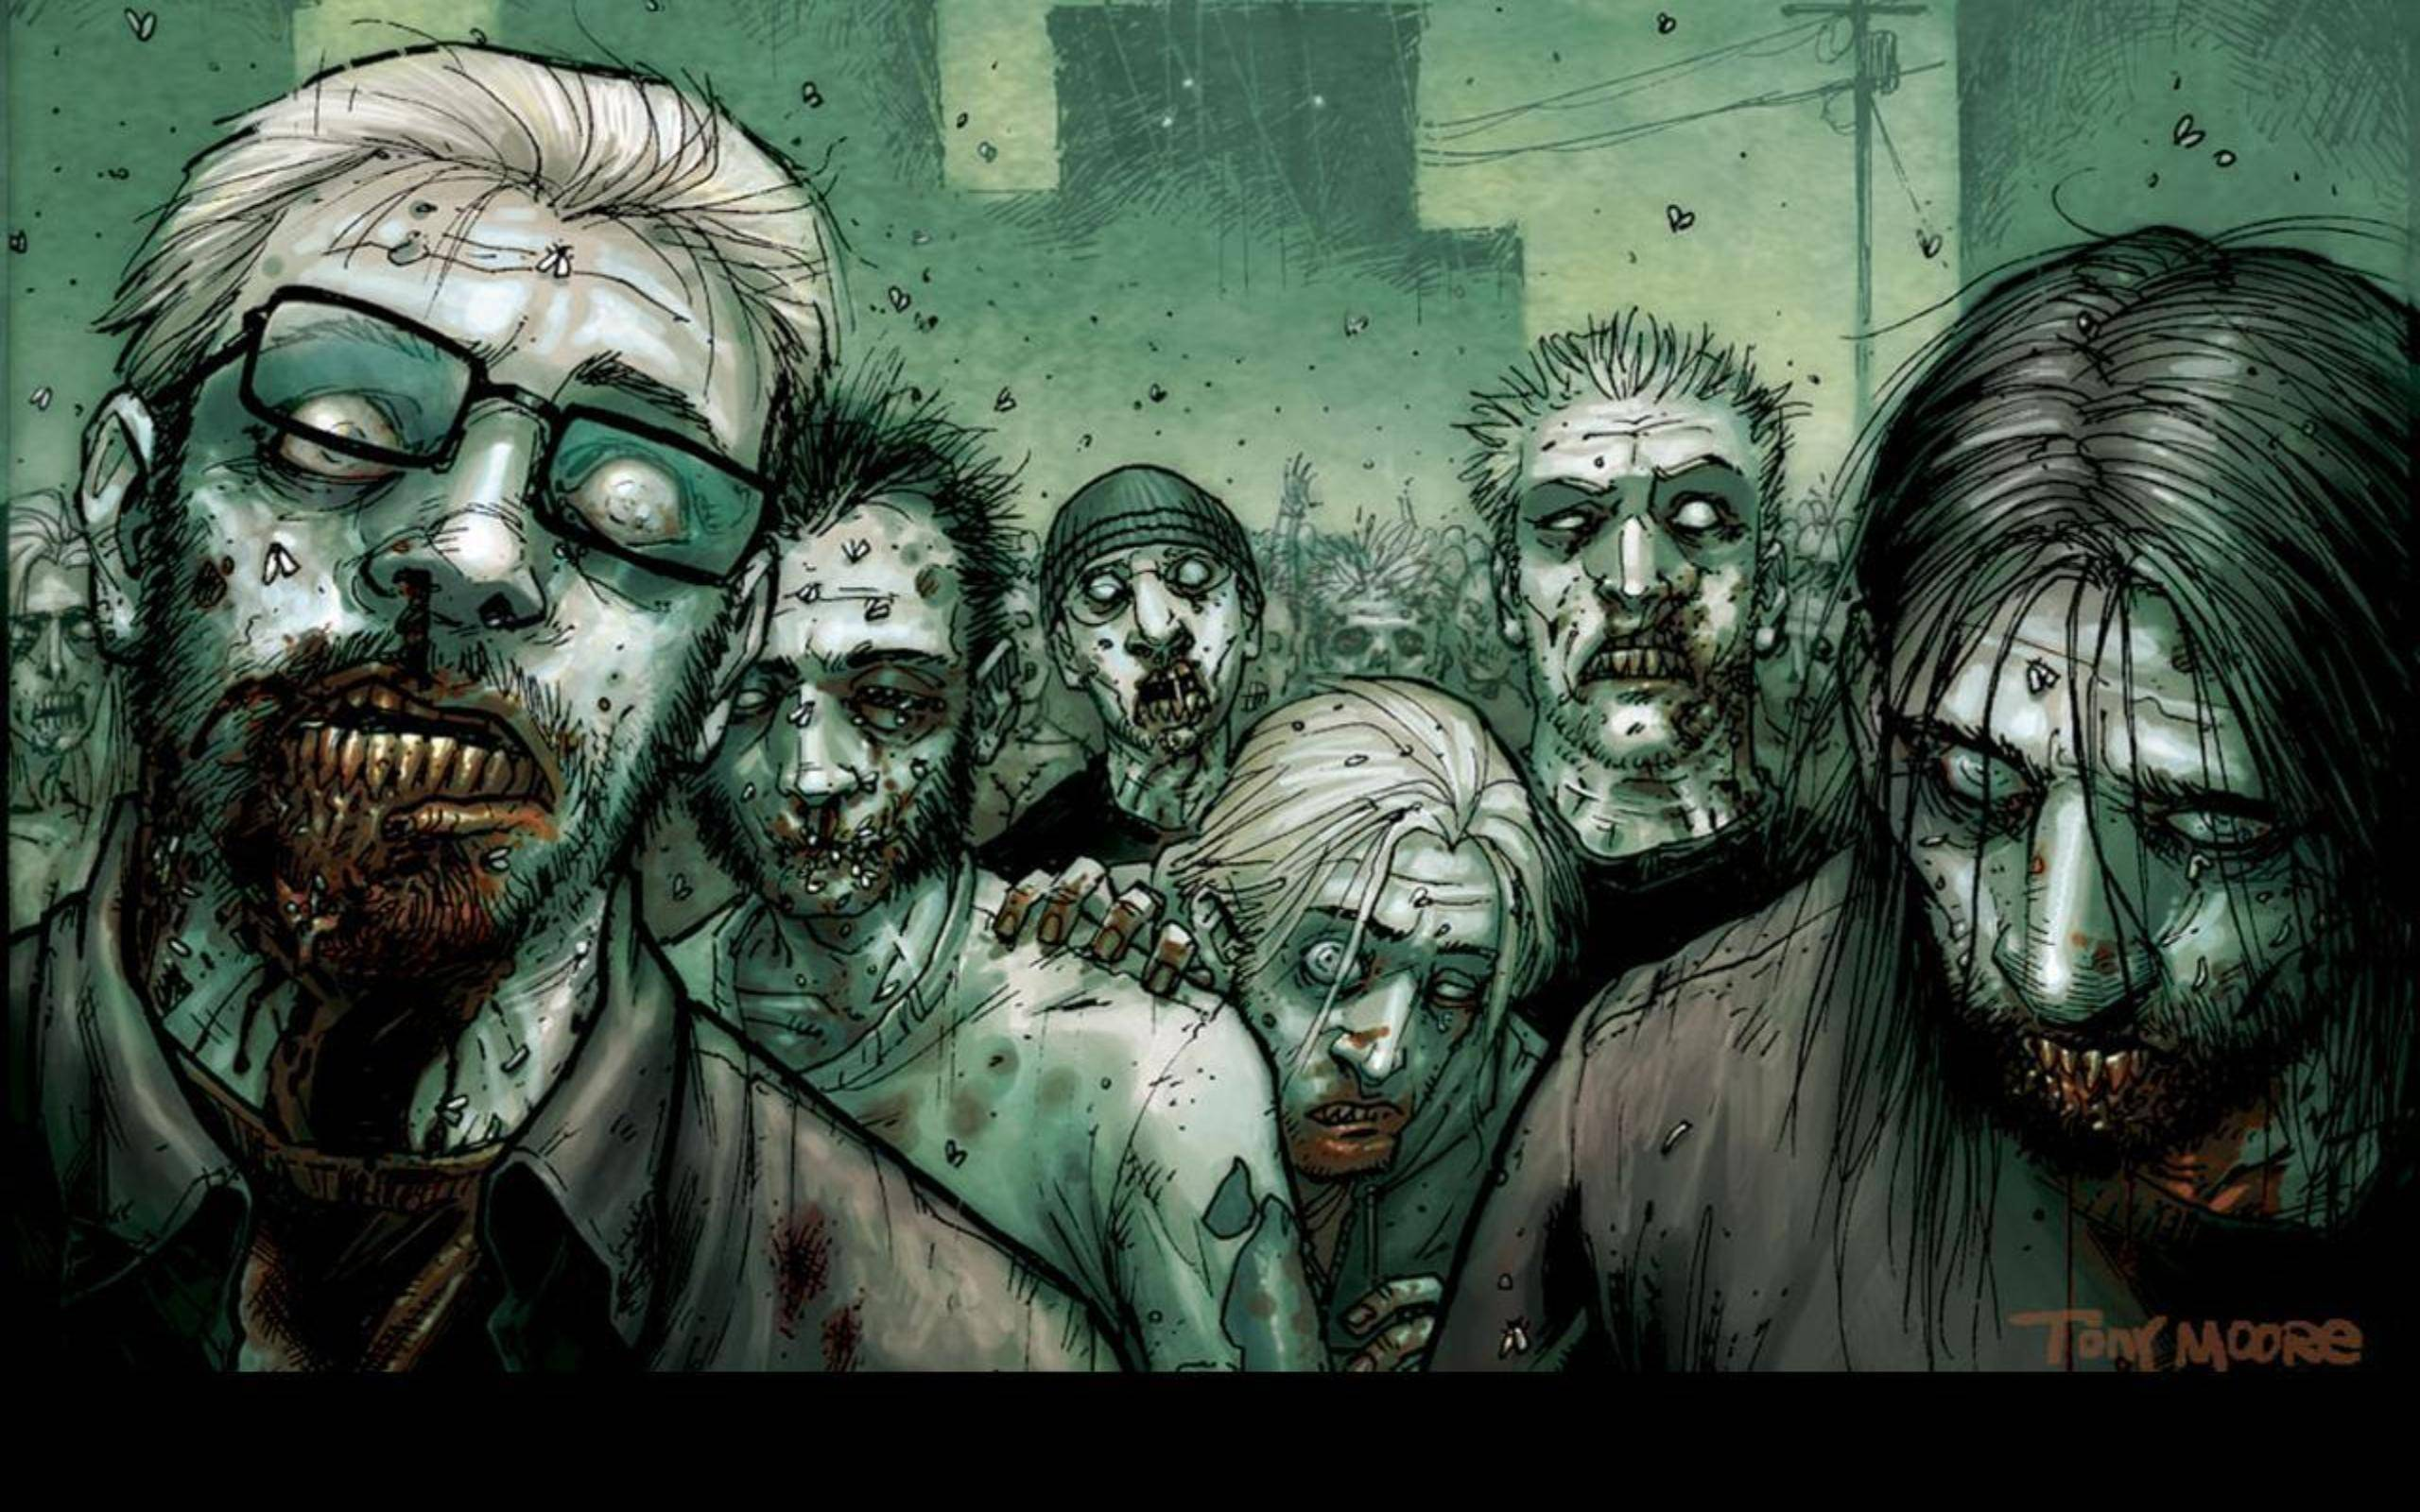 One Amazing Zombie Desktop Wallpaper for You